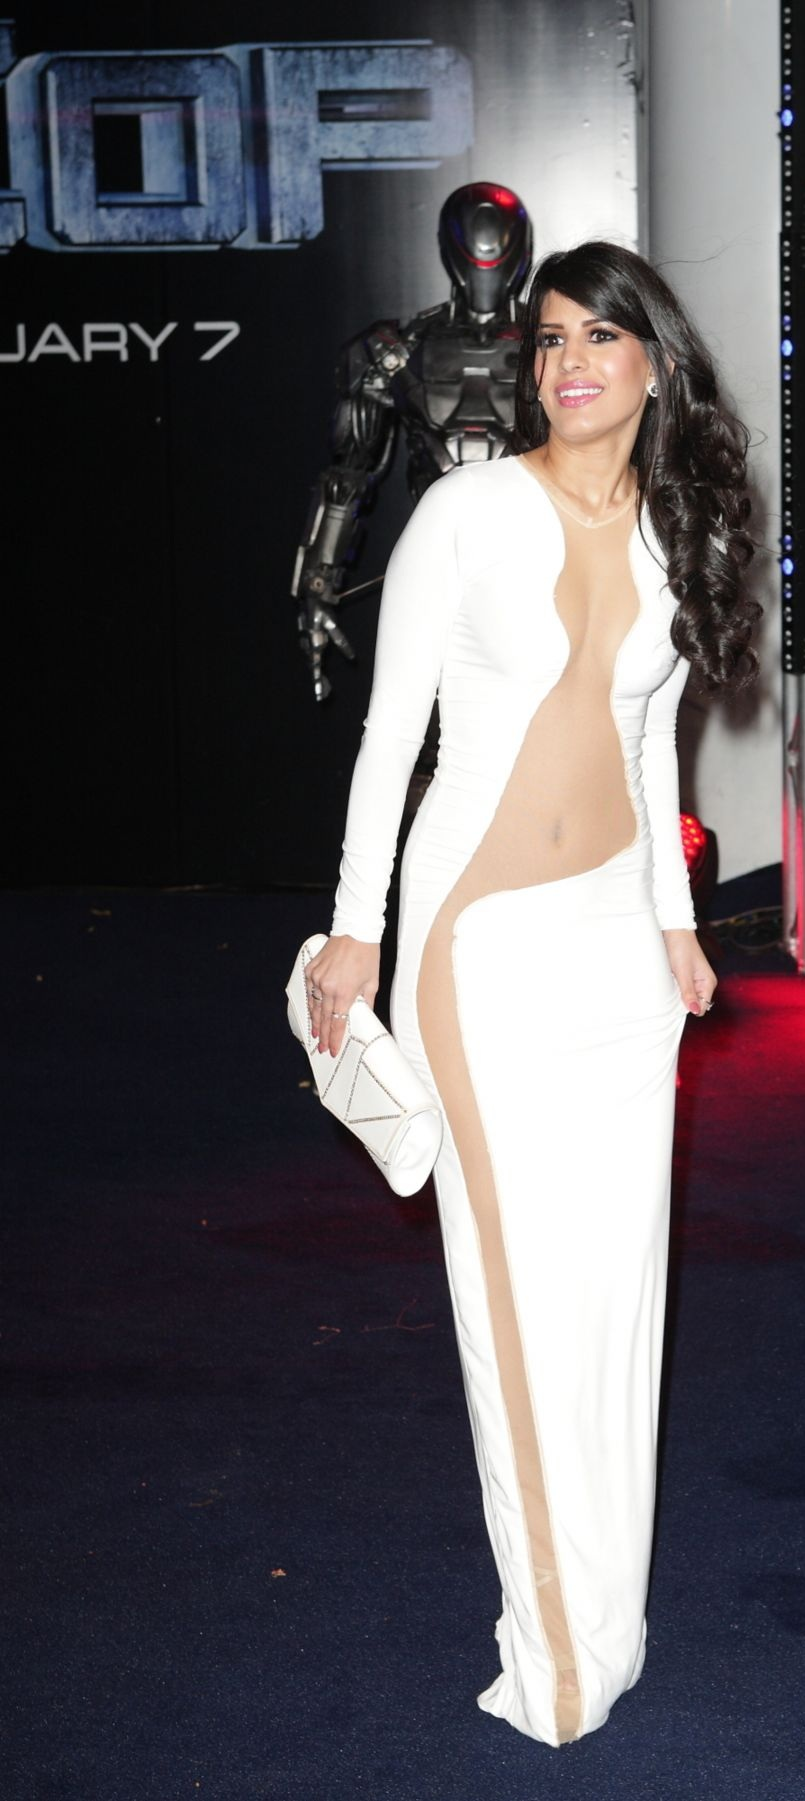 jasmin-walia-at-robocop-premiere-in-london_4.jpg - 206.57 KB